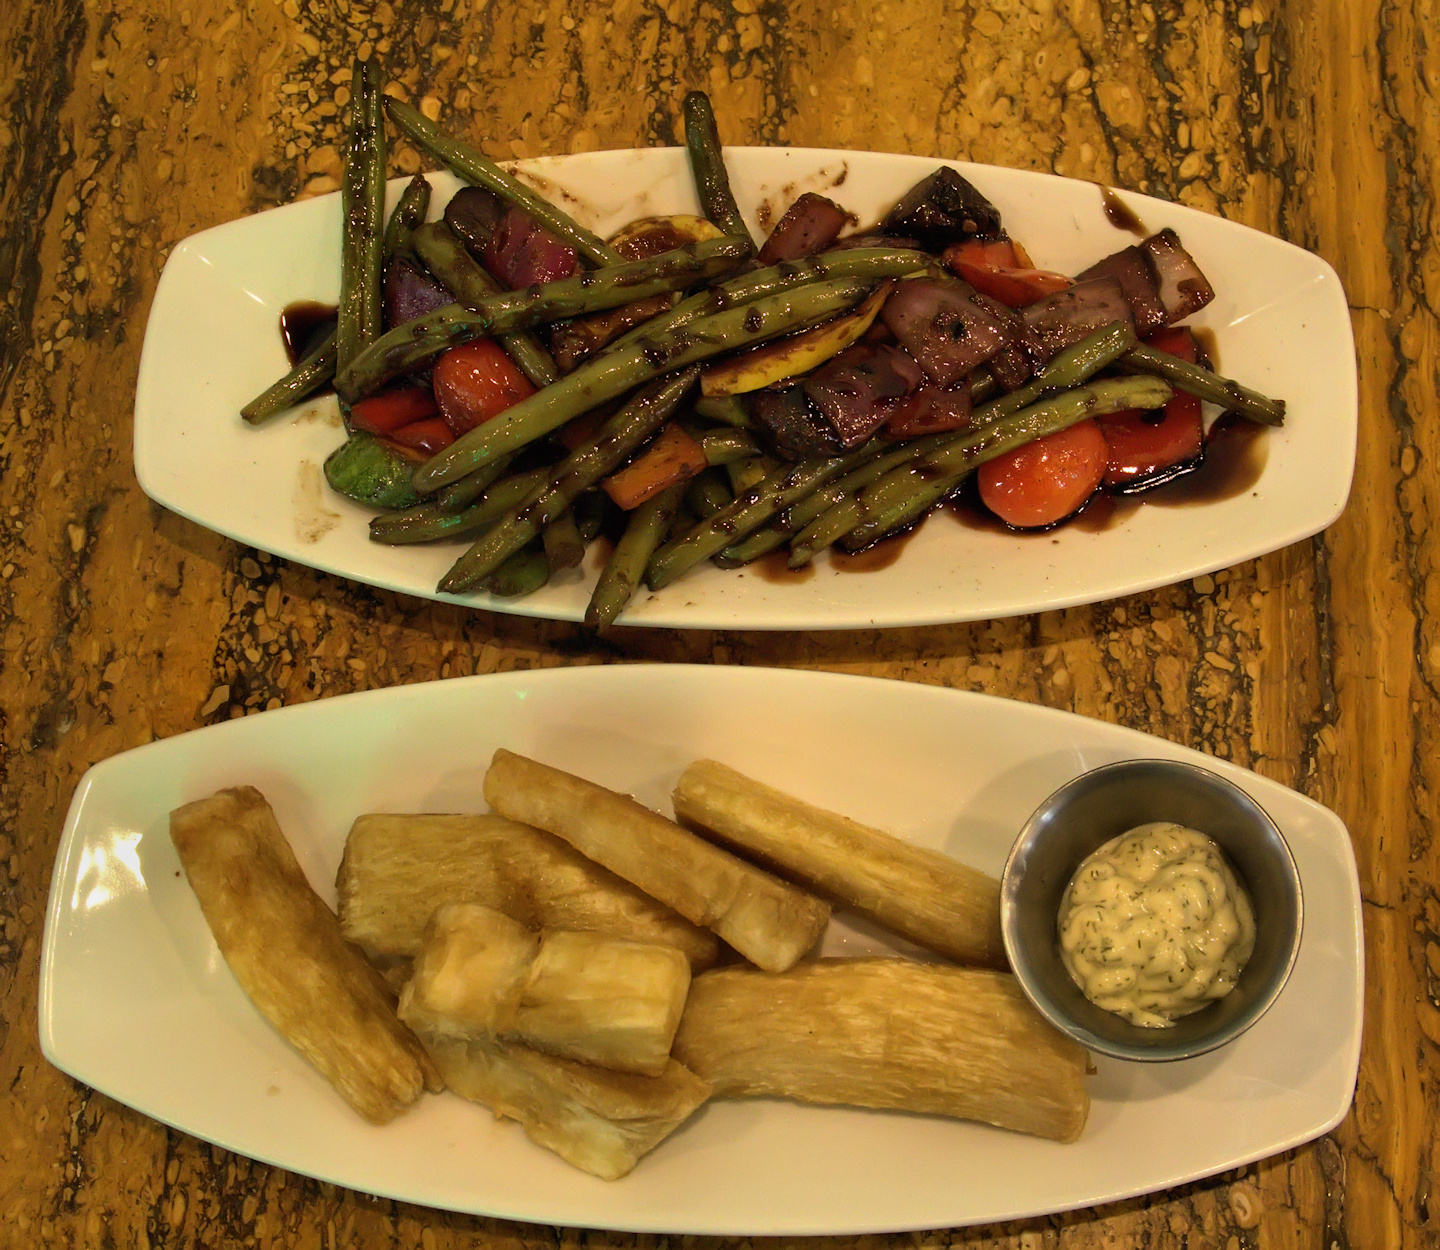 Mixed vegetables and fried yucca